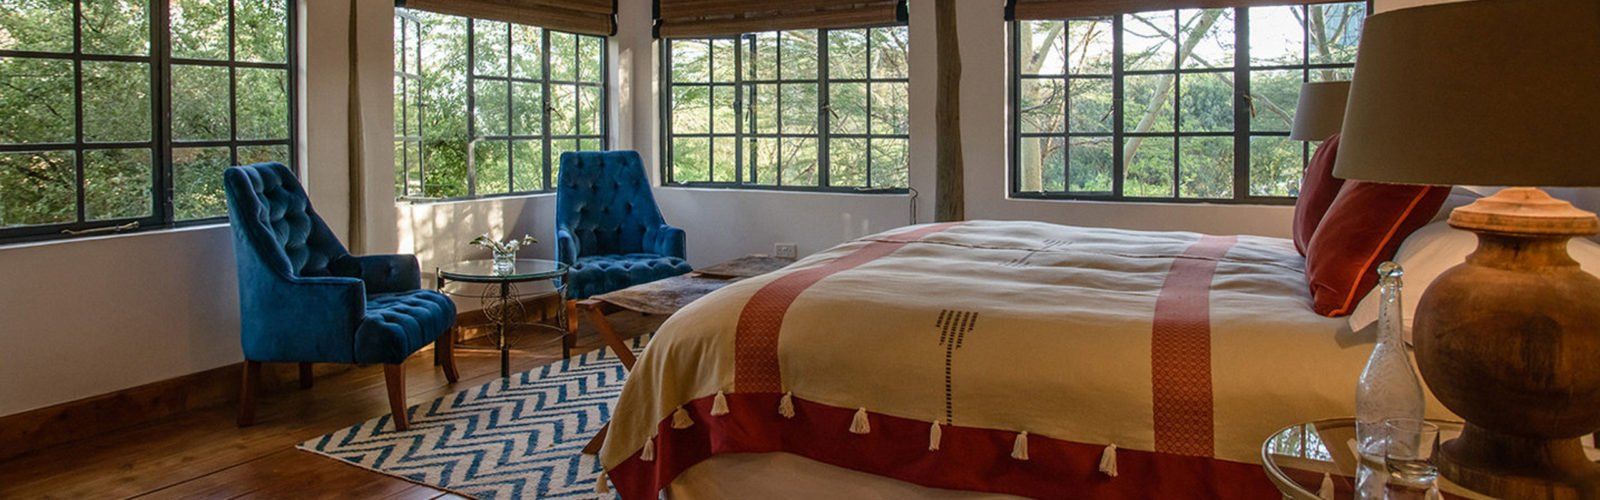 148-giraffe-sanctuary-bedroom